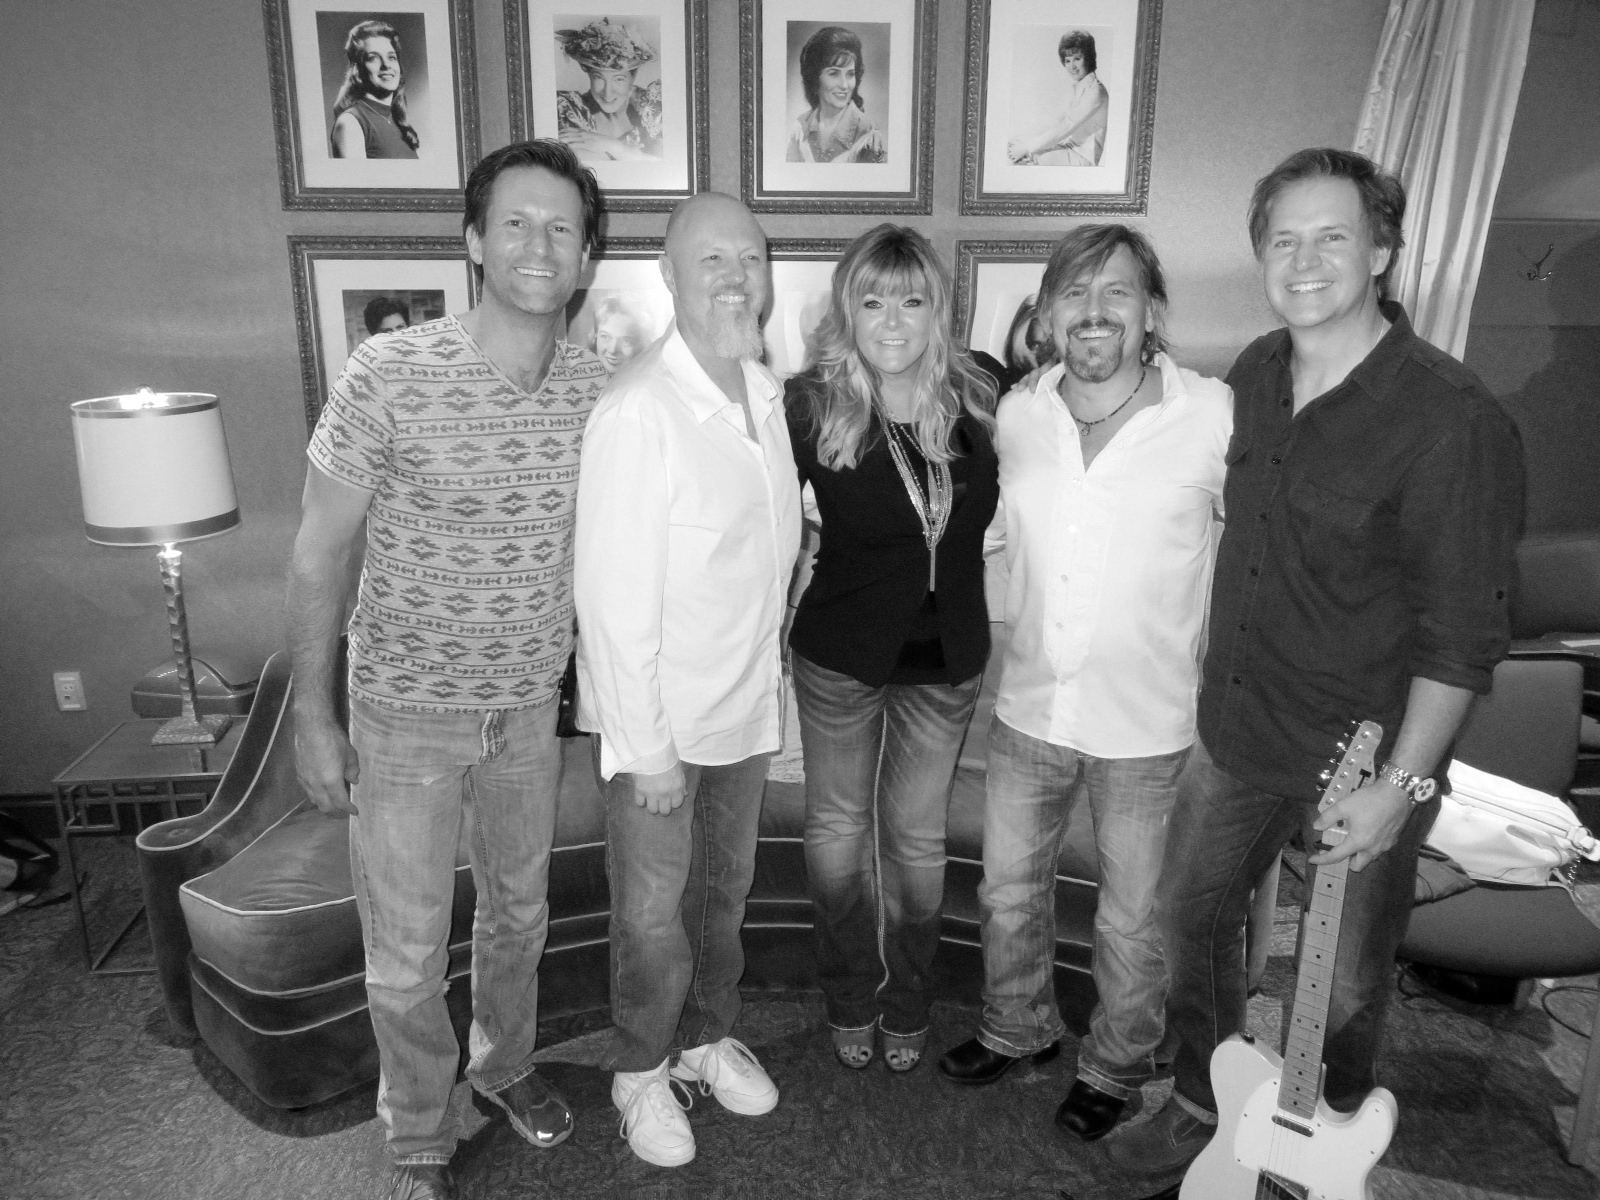 Backstage at the Opry w/Jamie O'Neal